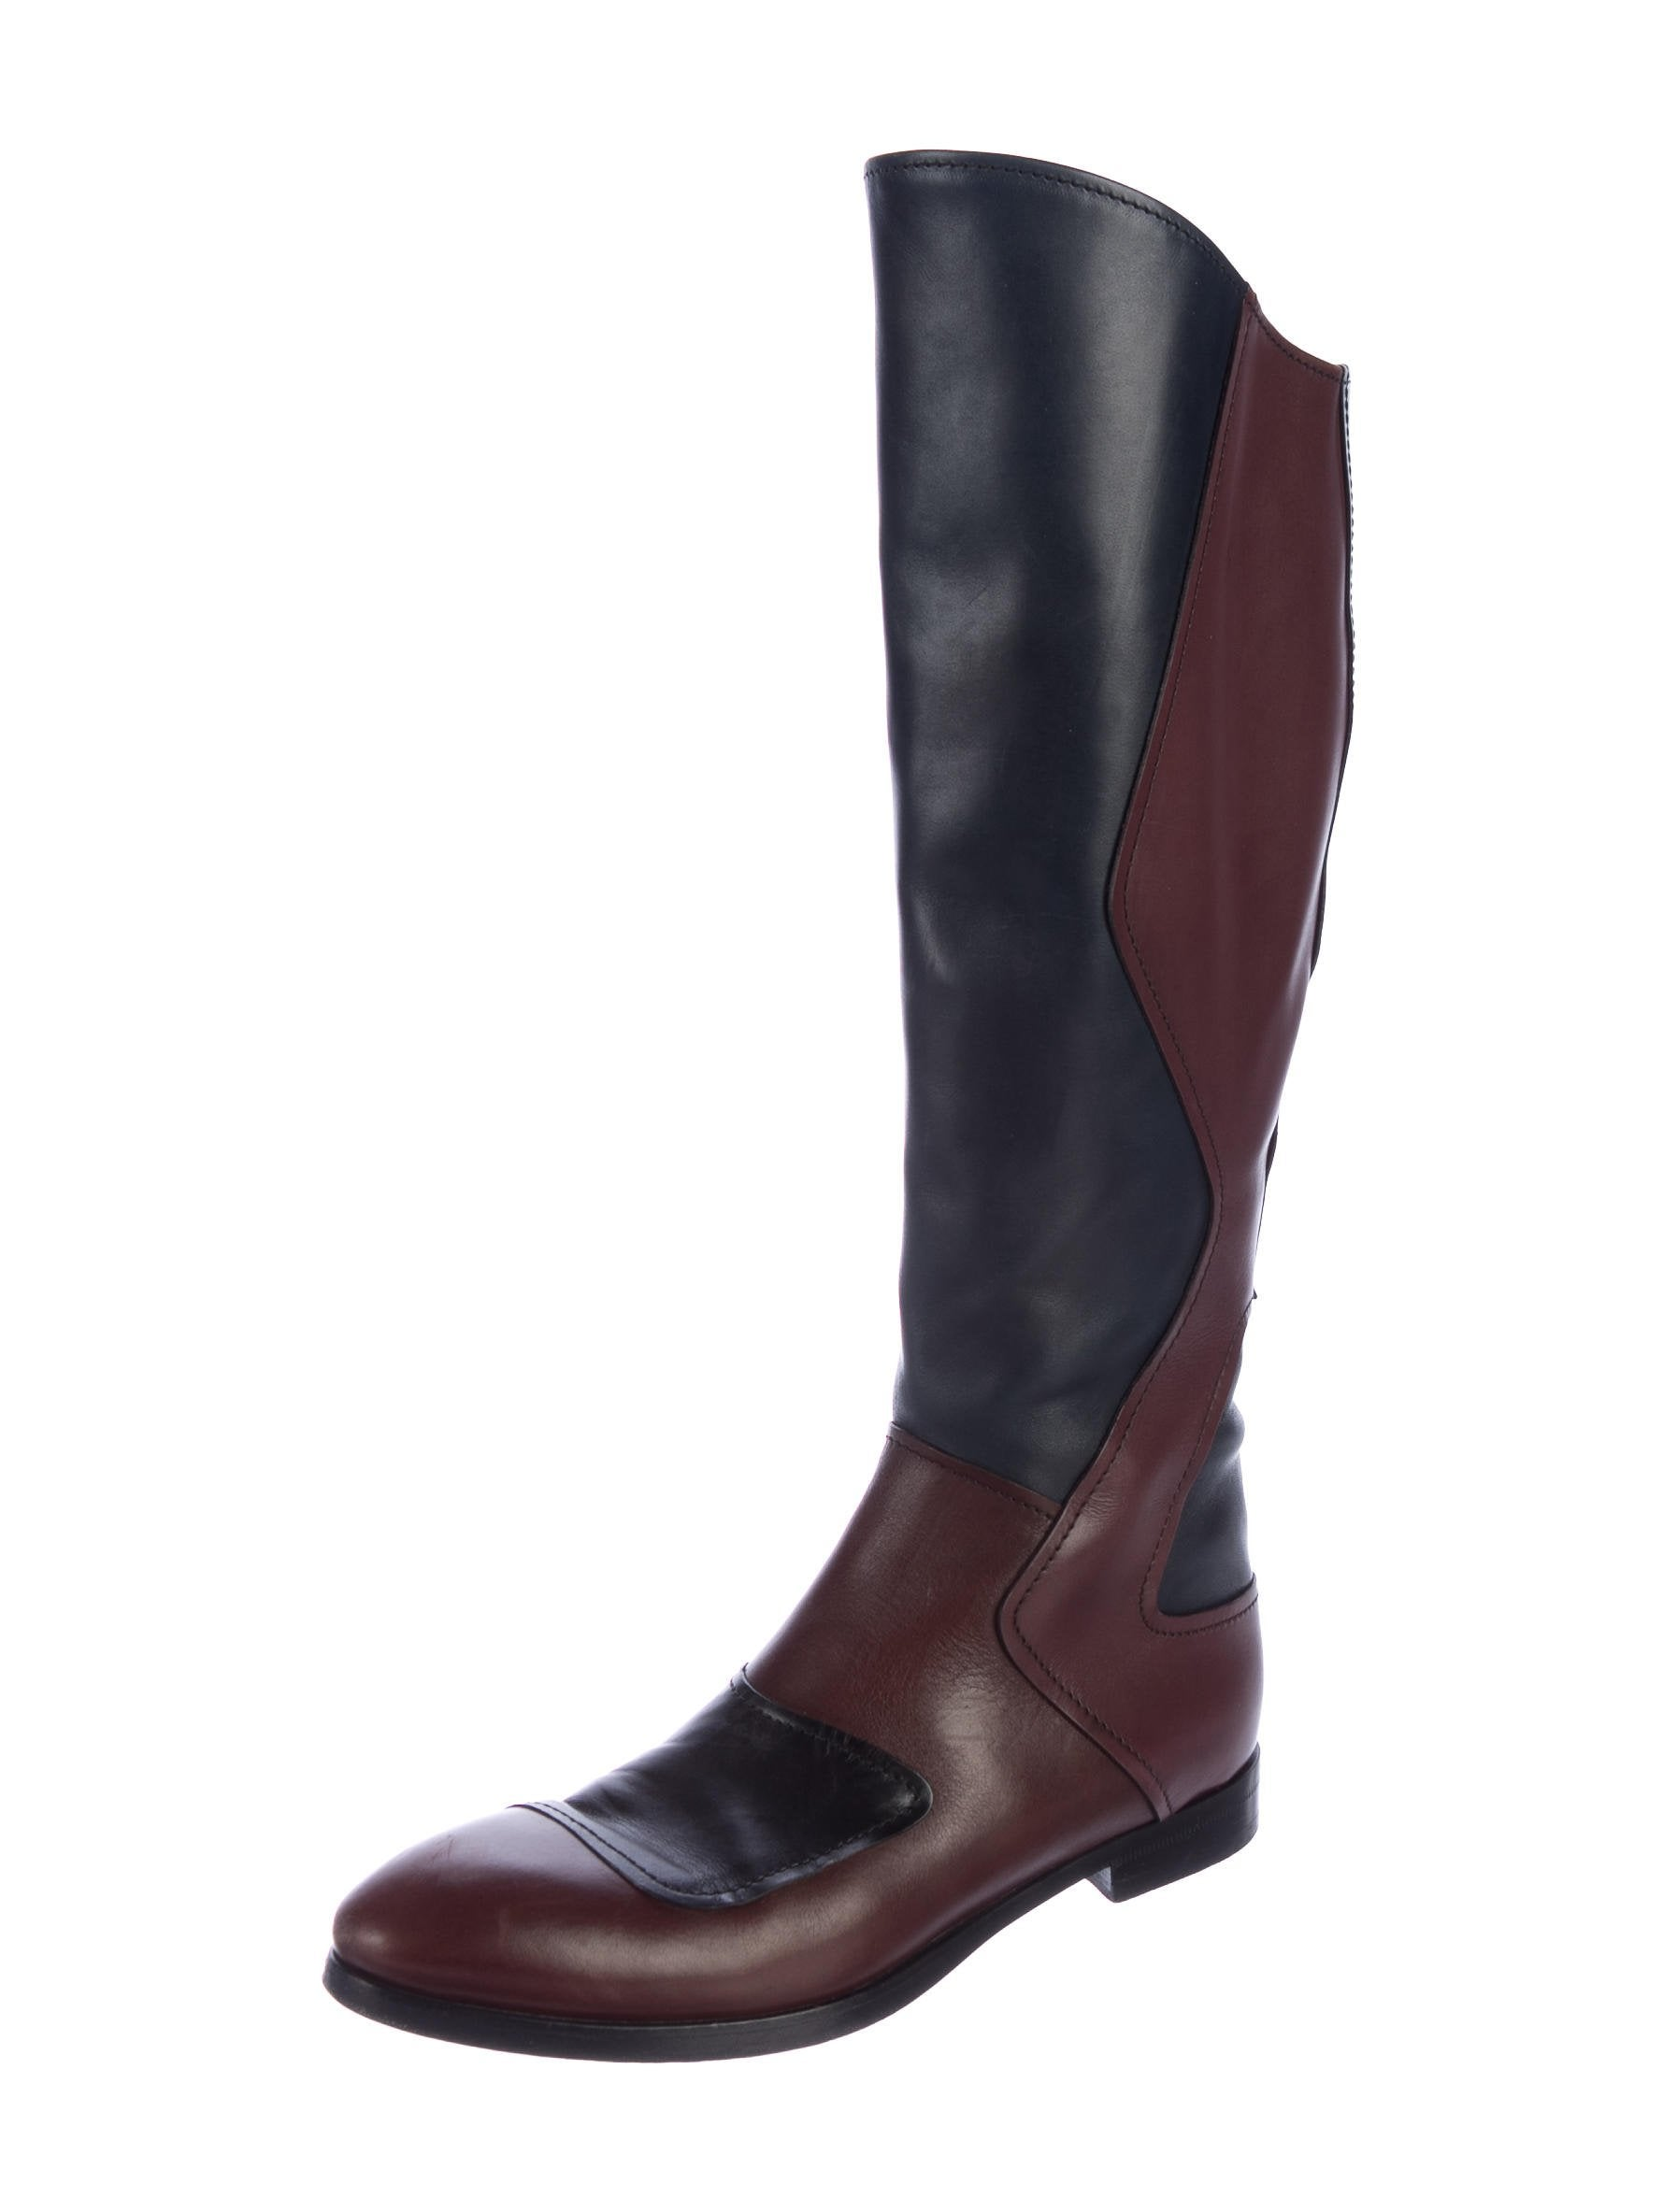 Miu Miu Knee-High Colorblock Boots clearance shop for exclusive sale online clearance eastbay cheap sale affordable MxZxM62f